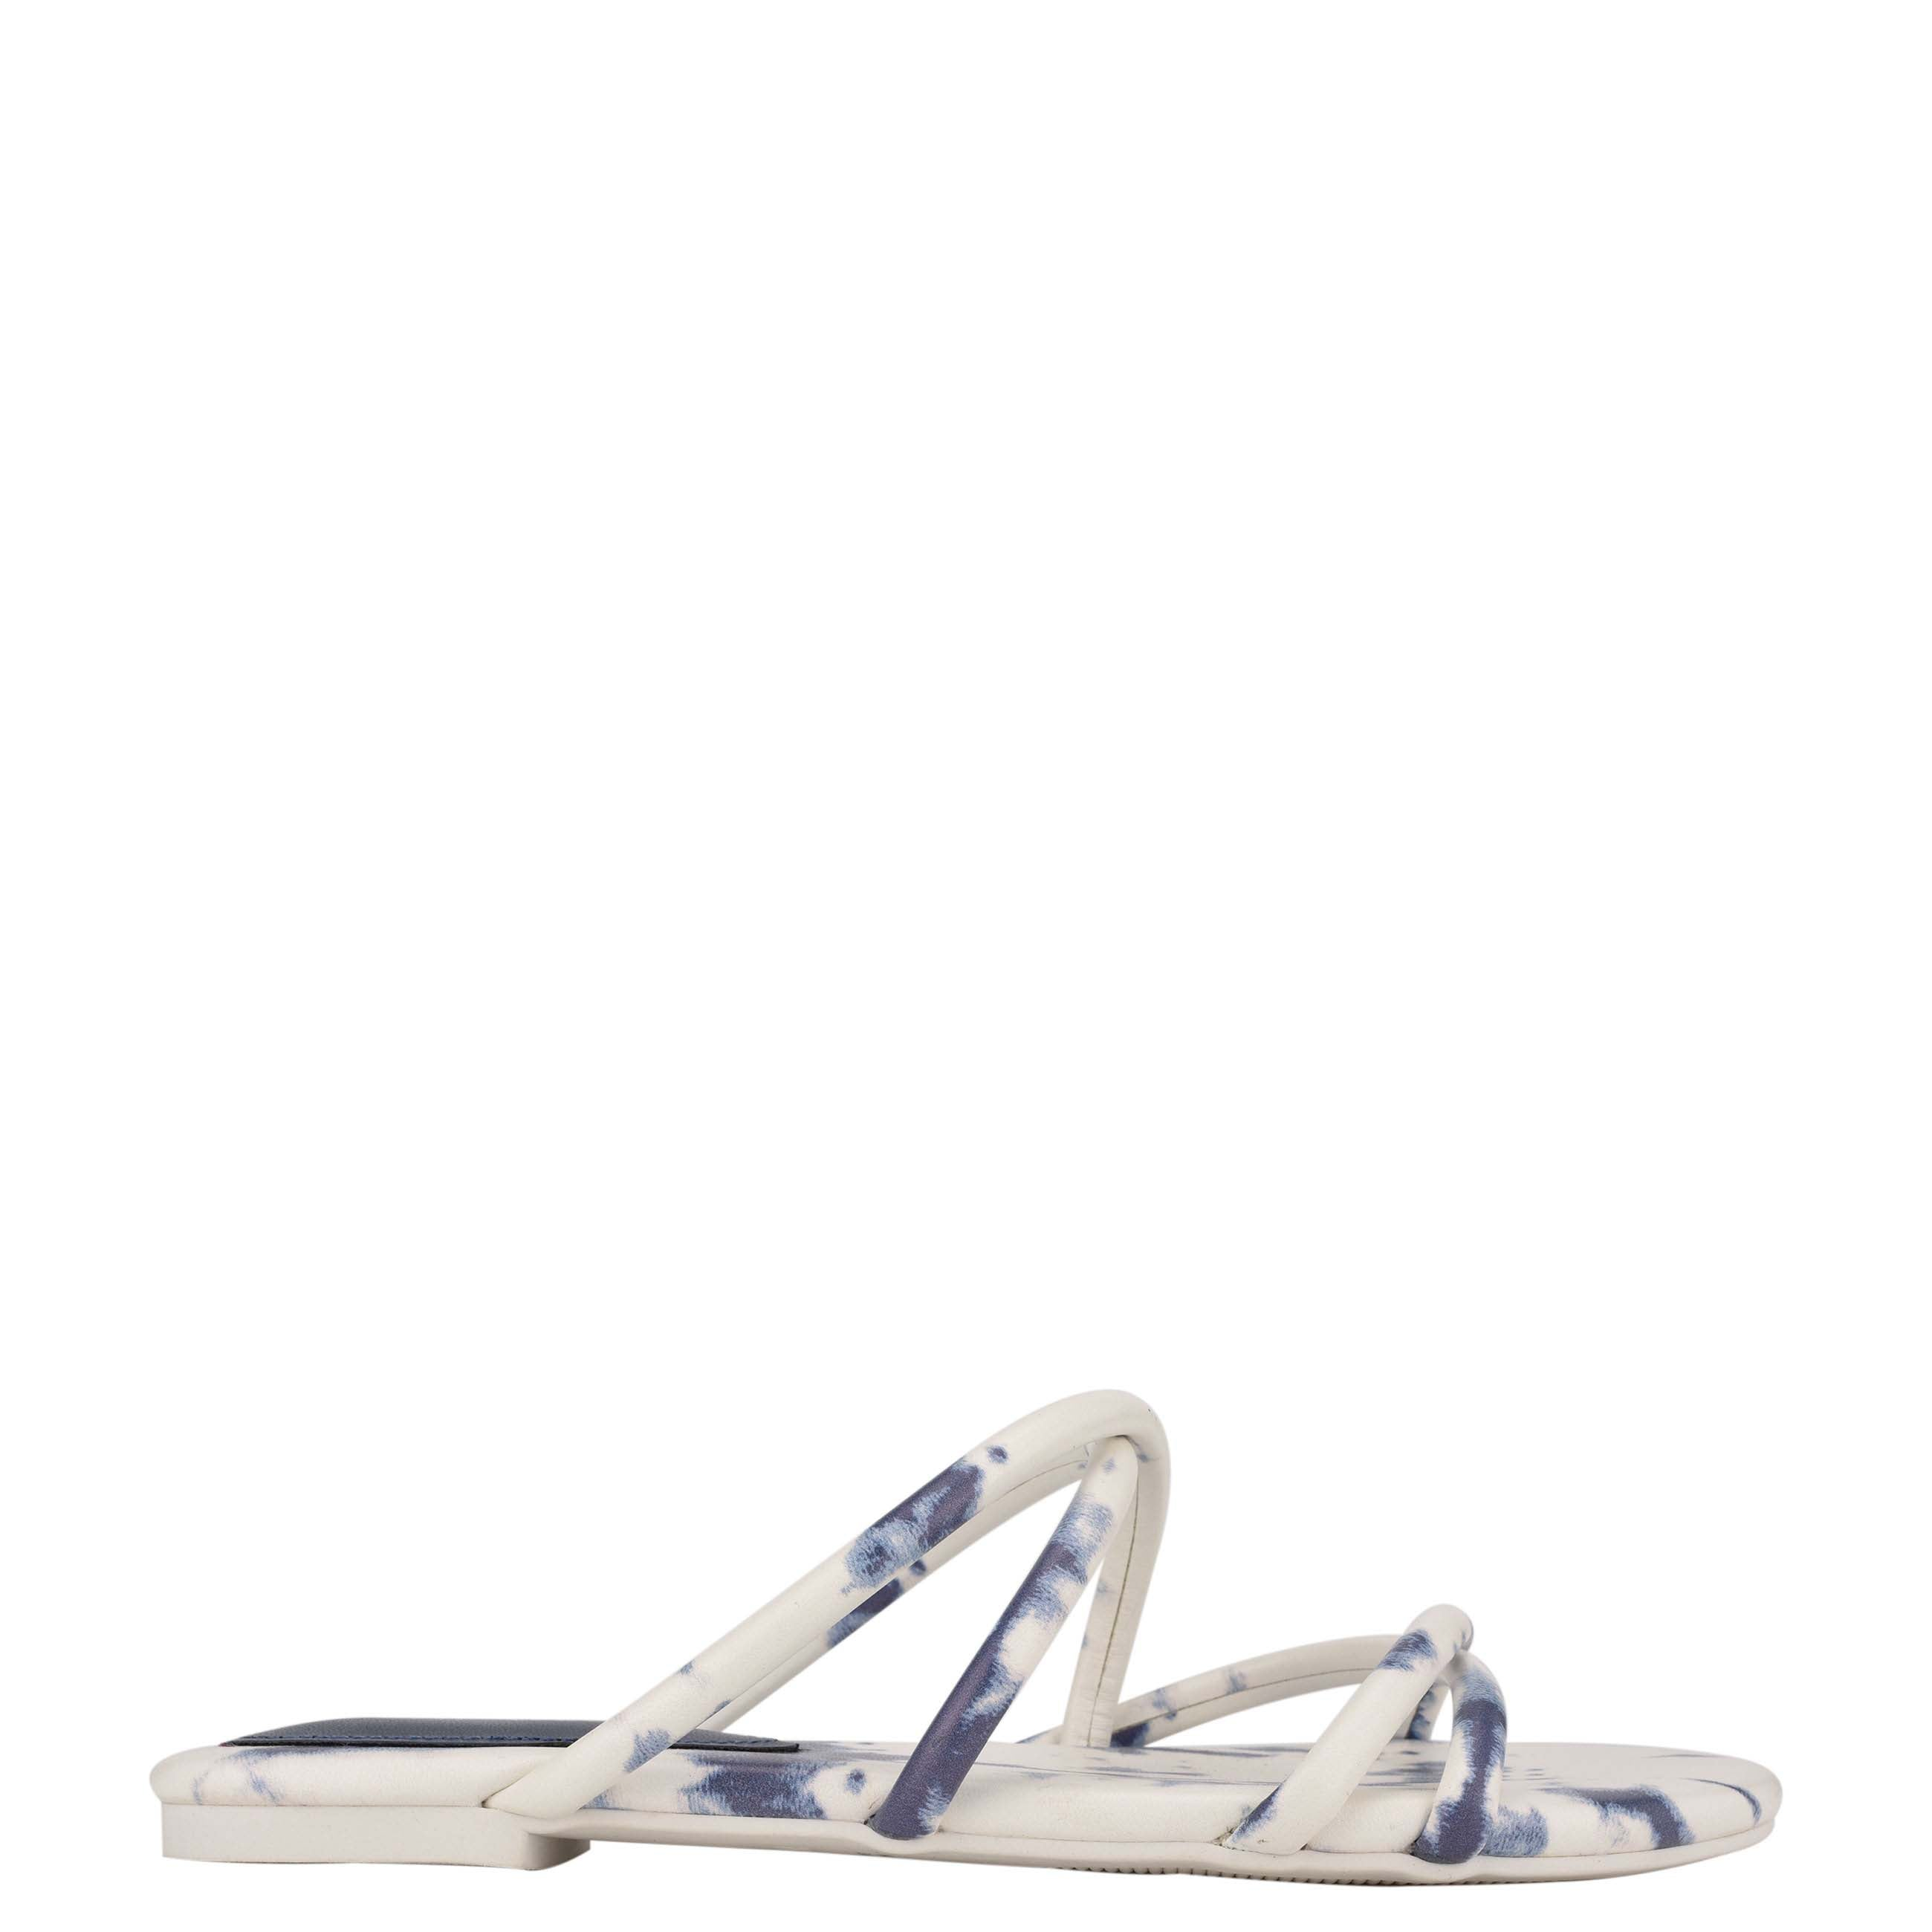 NINEWEST Beva Flat Slide Sandals